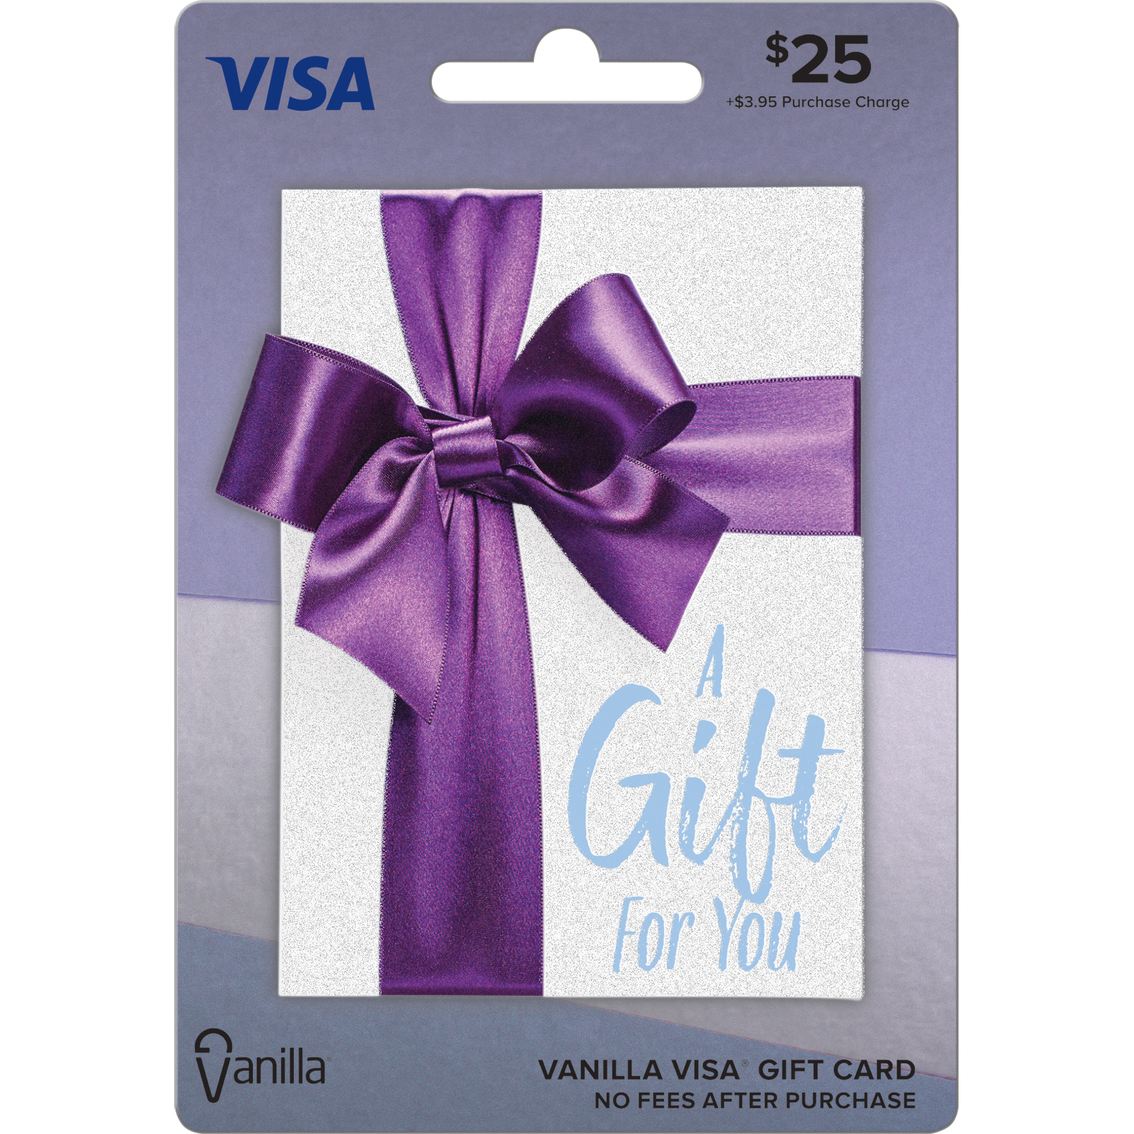 Vanilla Visa Jewel Box Gift Card Entertainment Dining Food Gifts Shop The Exchange